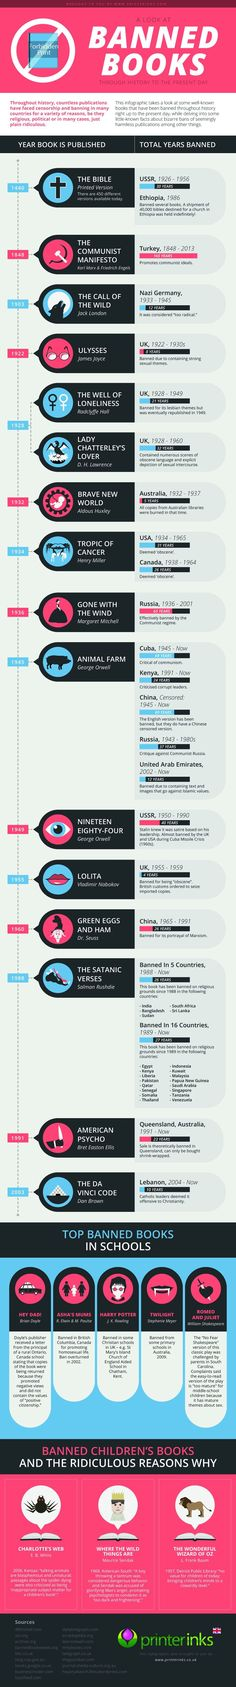 Great info graphic about the history of banned books.